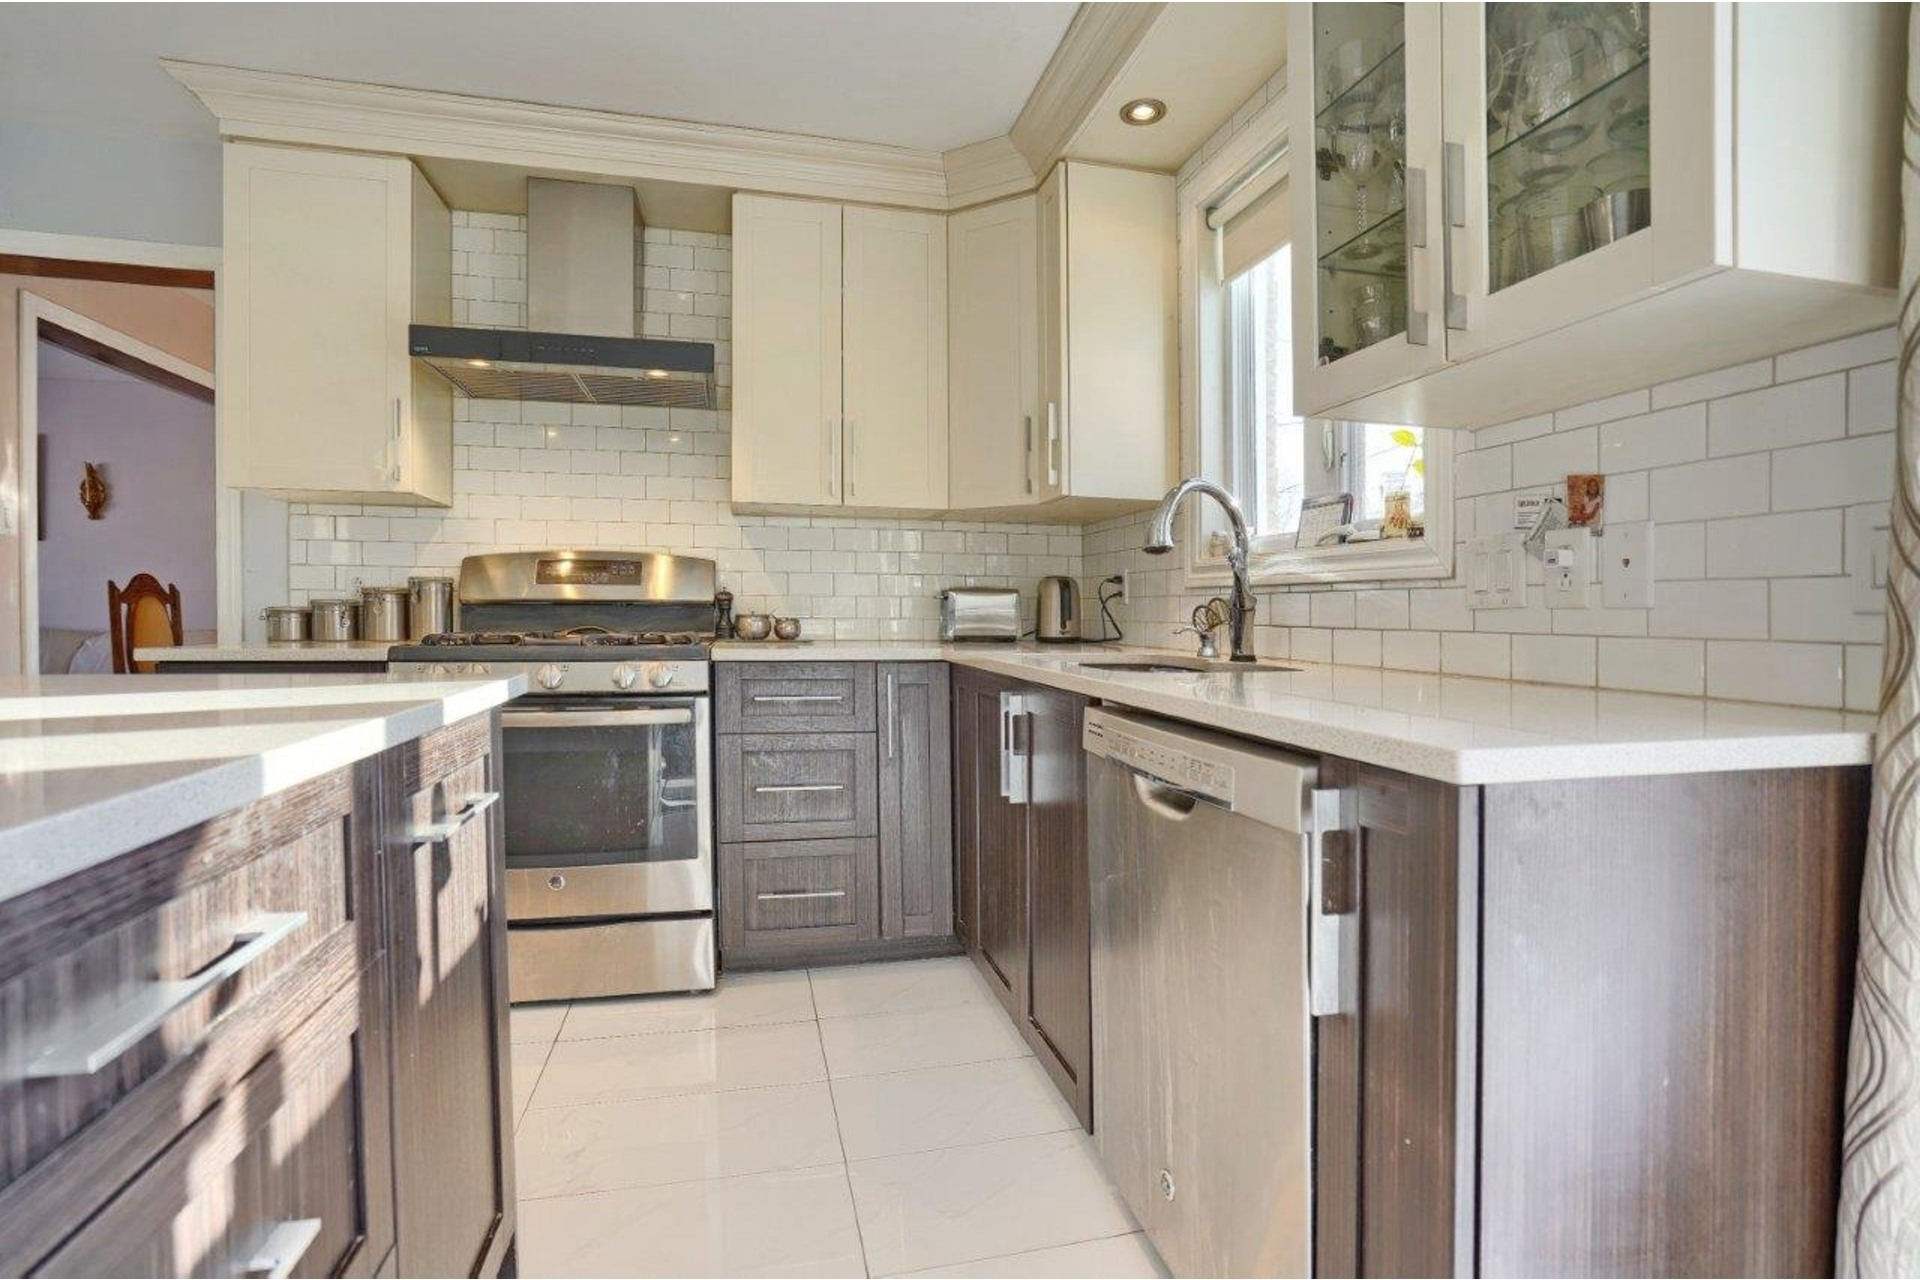 image 6 - House For sale Brossard - 14 rooms